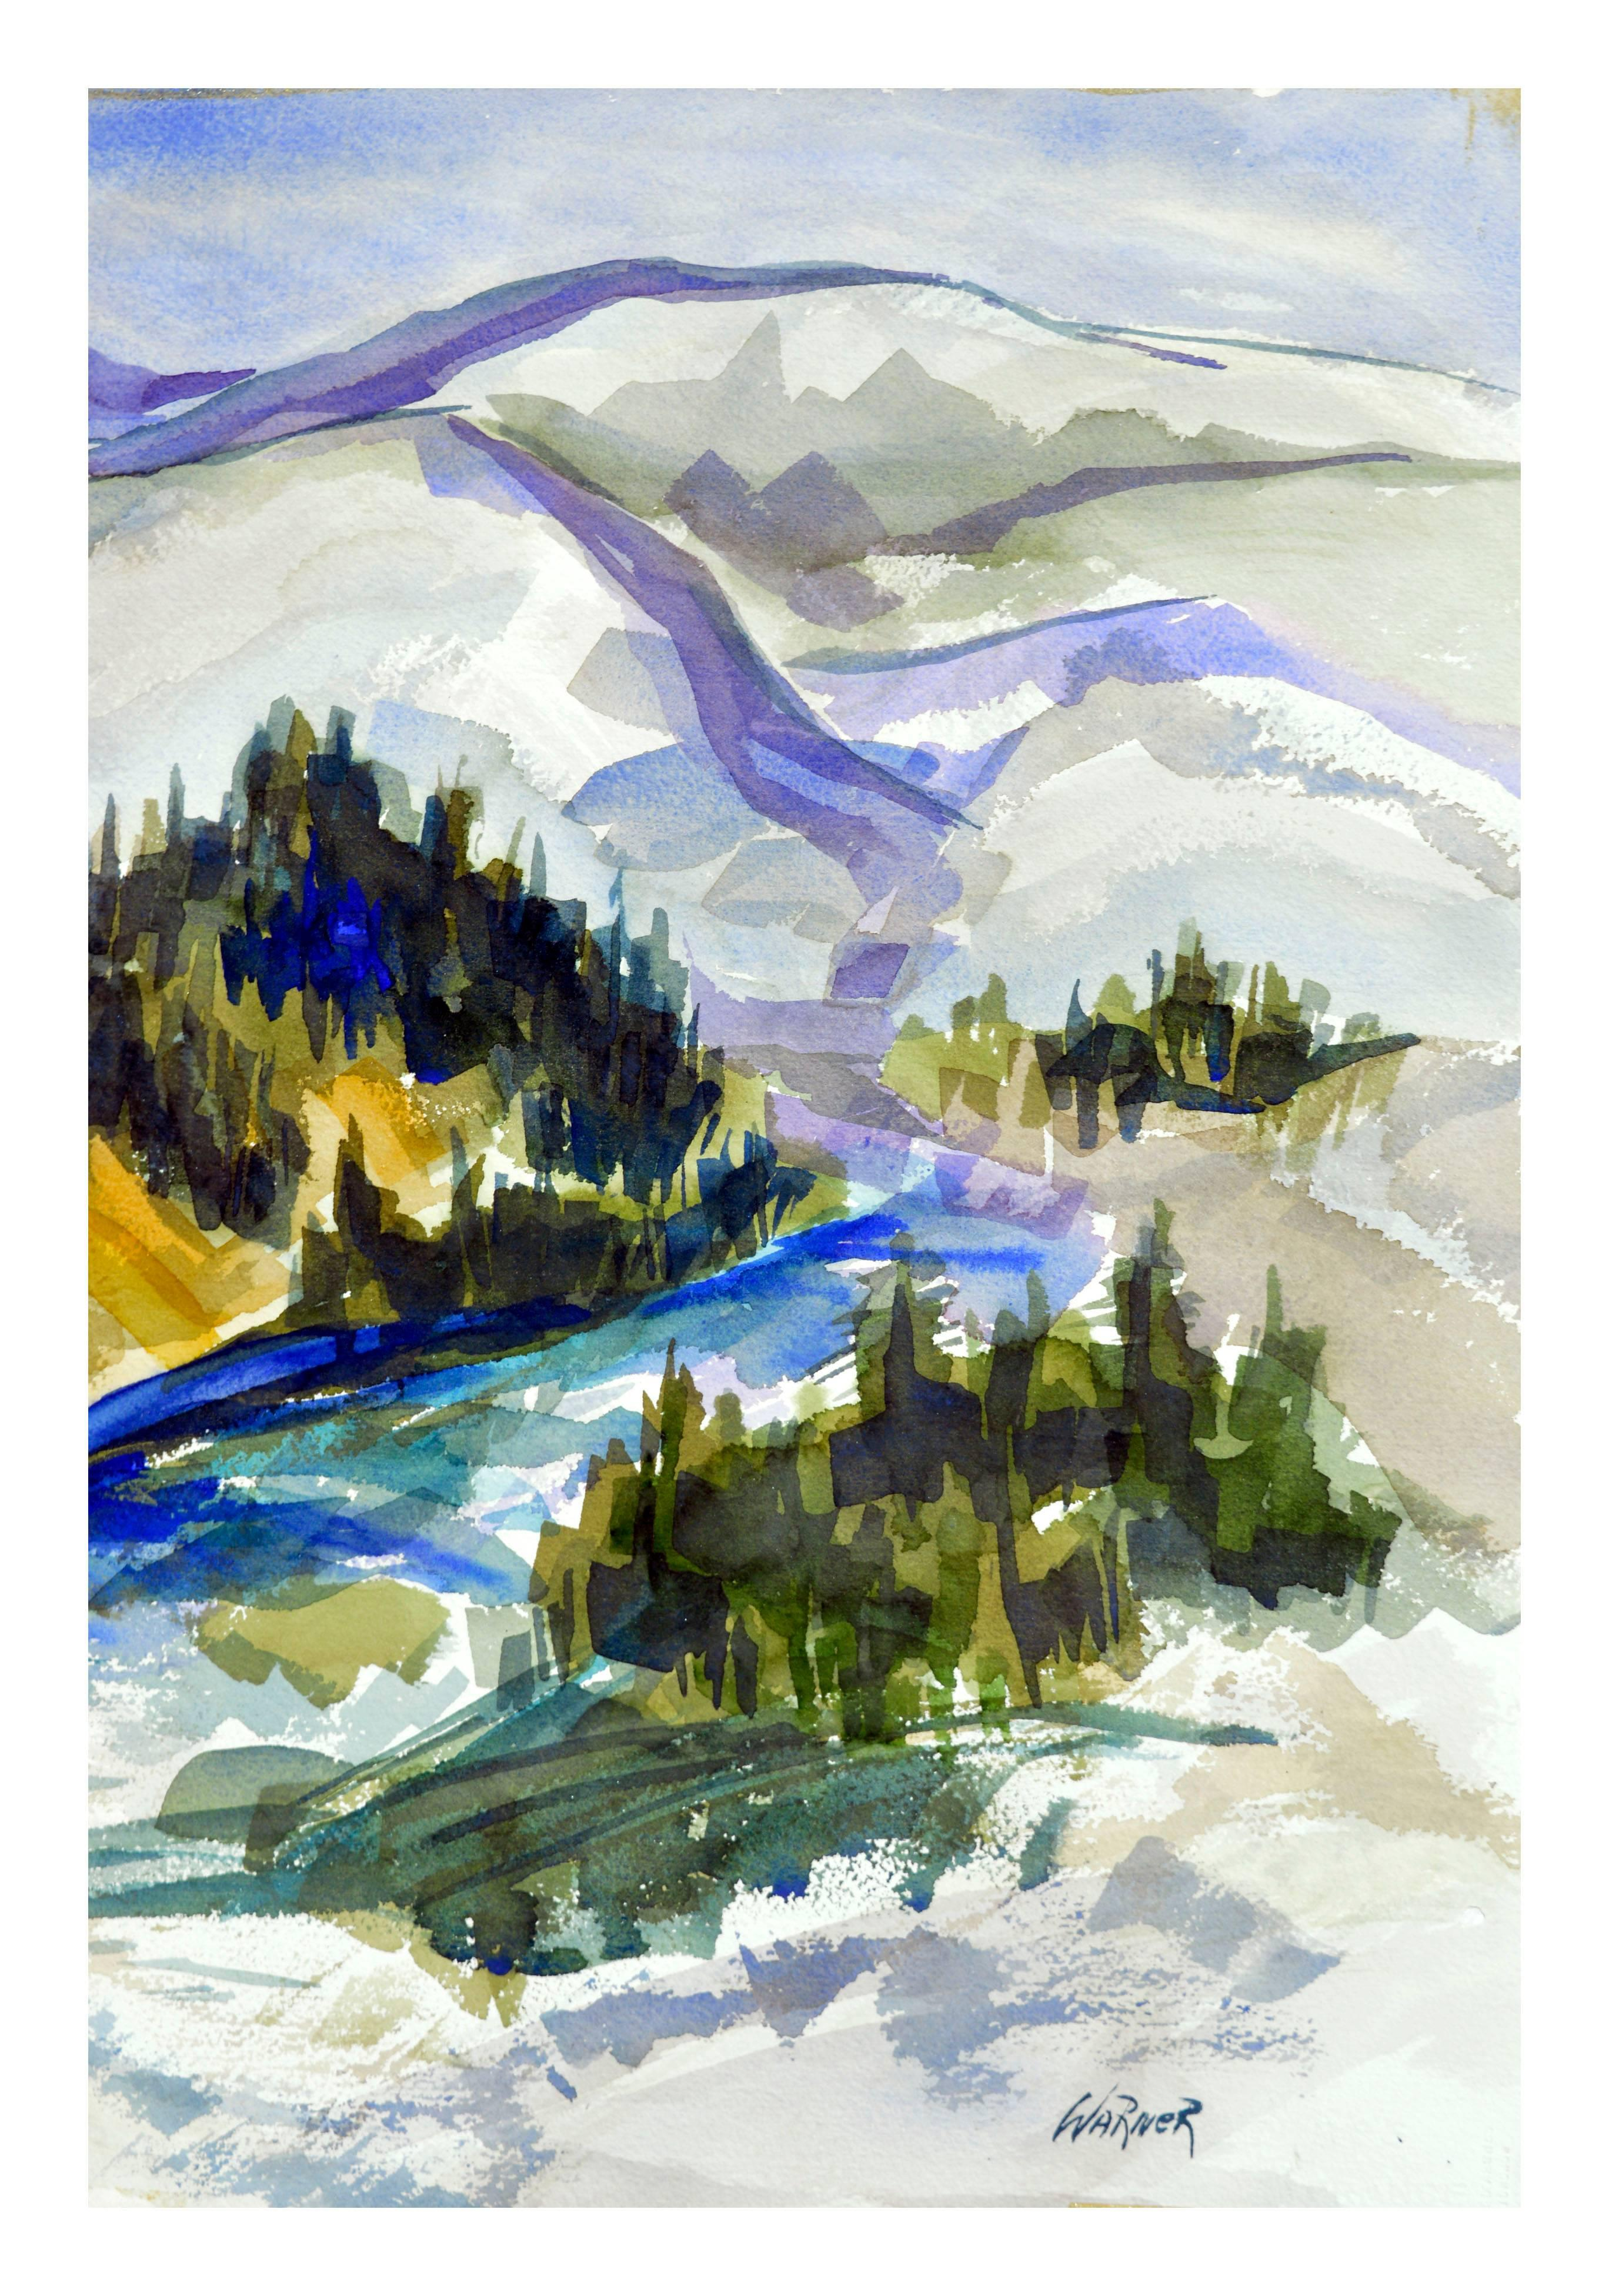 Sierra Mountains - 1970's Abstracted Landscape